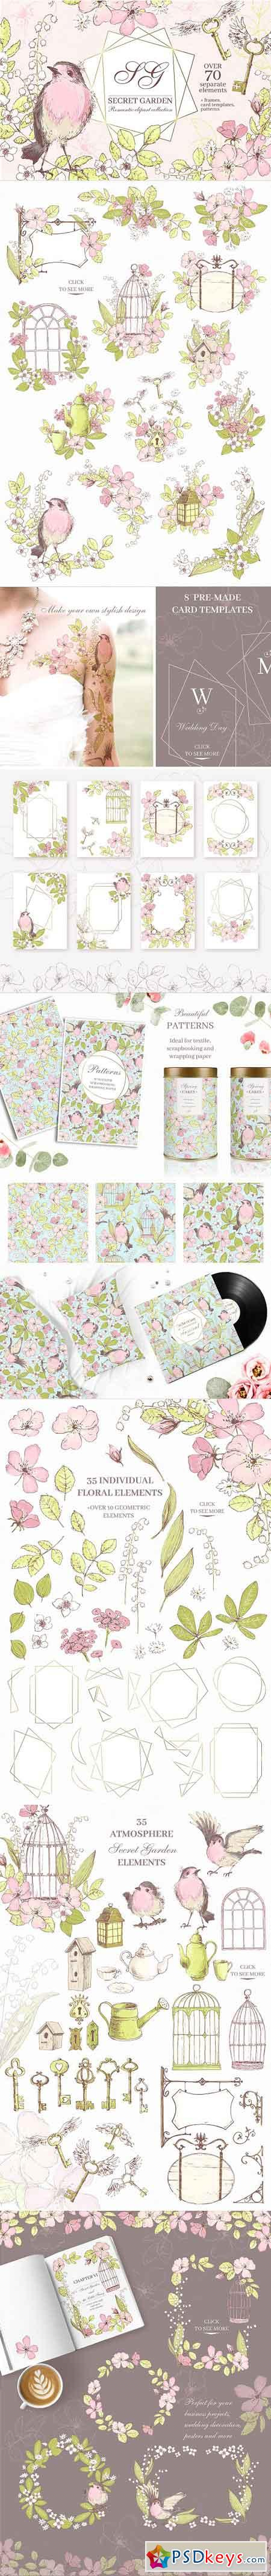 Secret Garden graphic kit 2904588